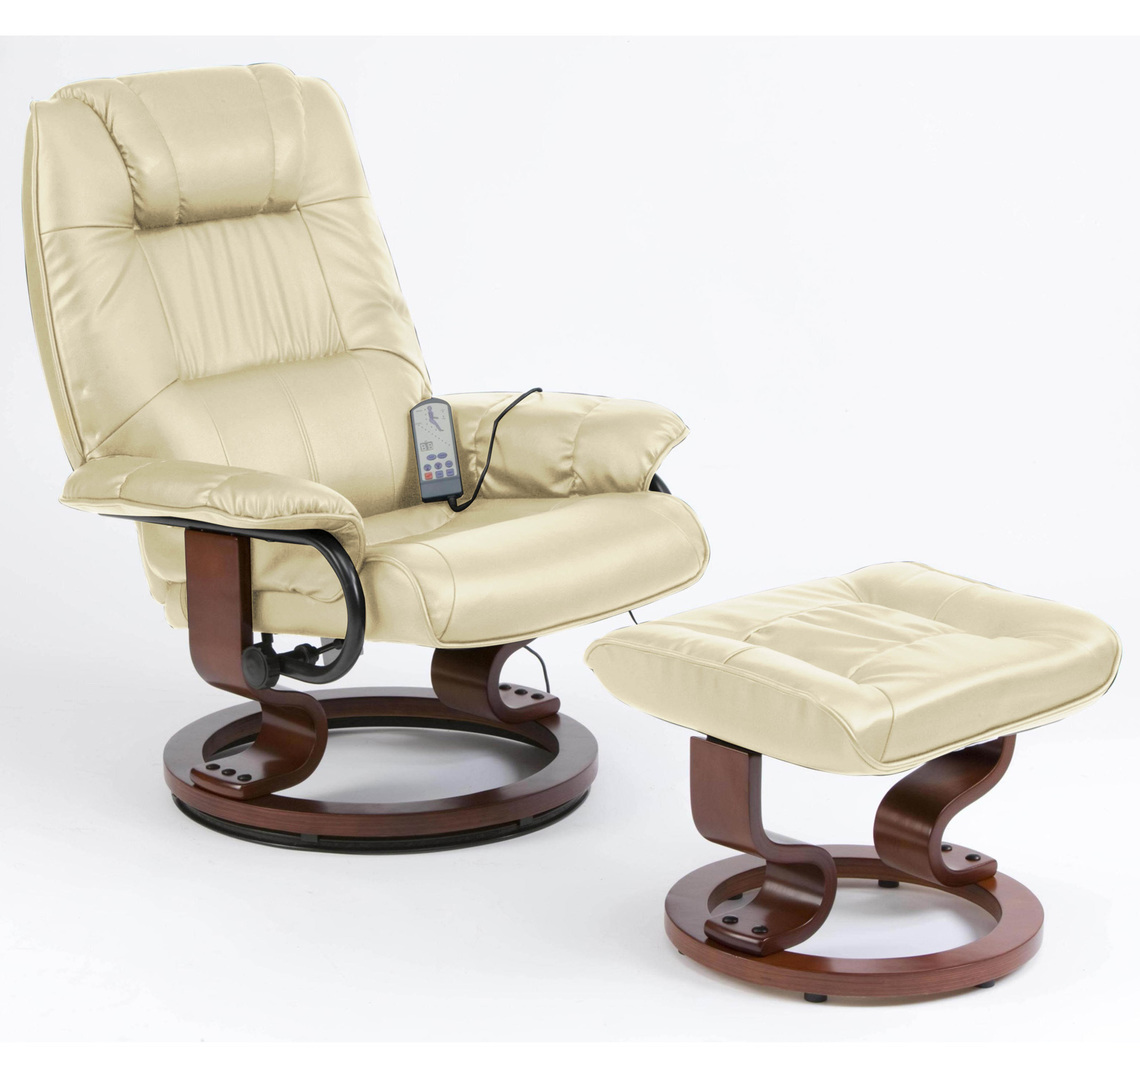 Napoli Heat and Massage Recliner Chair with Foot Stool